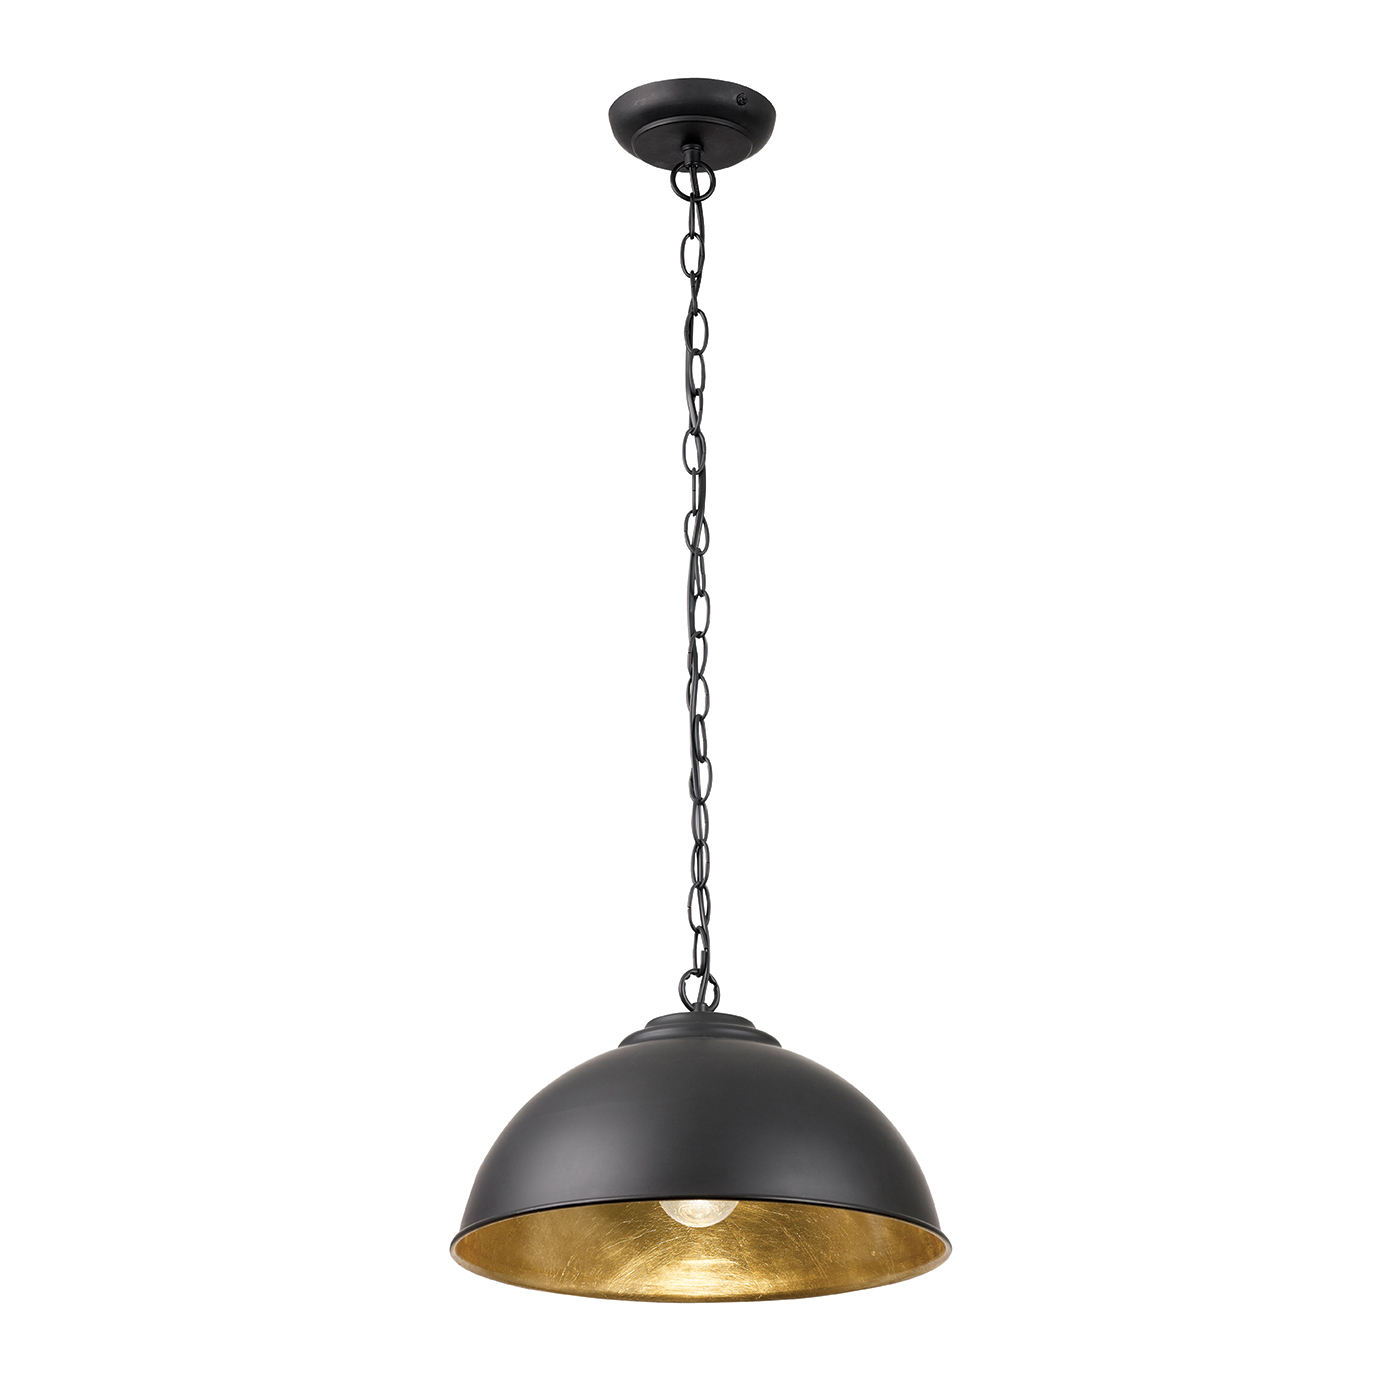 Endon Colman pendant 1x 60W Matt black & gold leaf